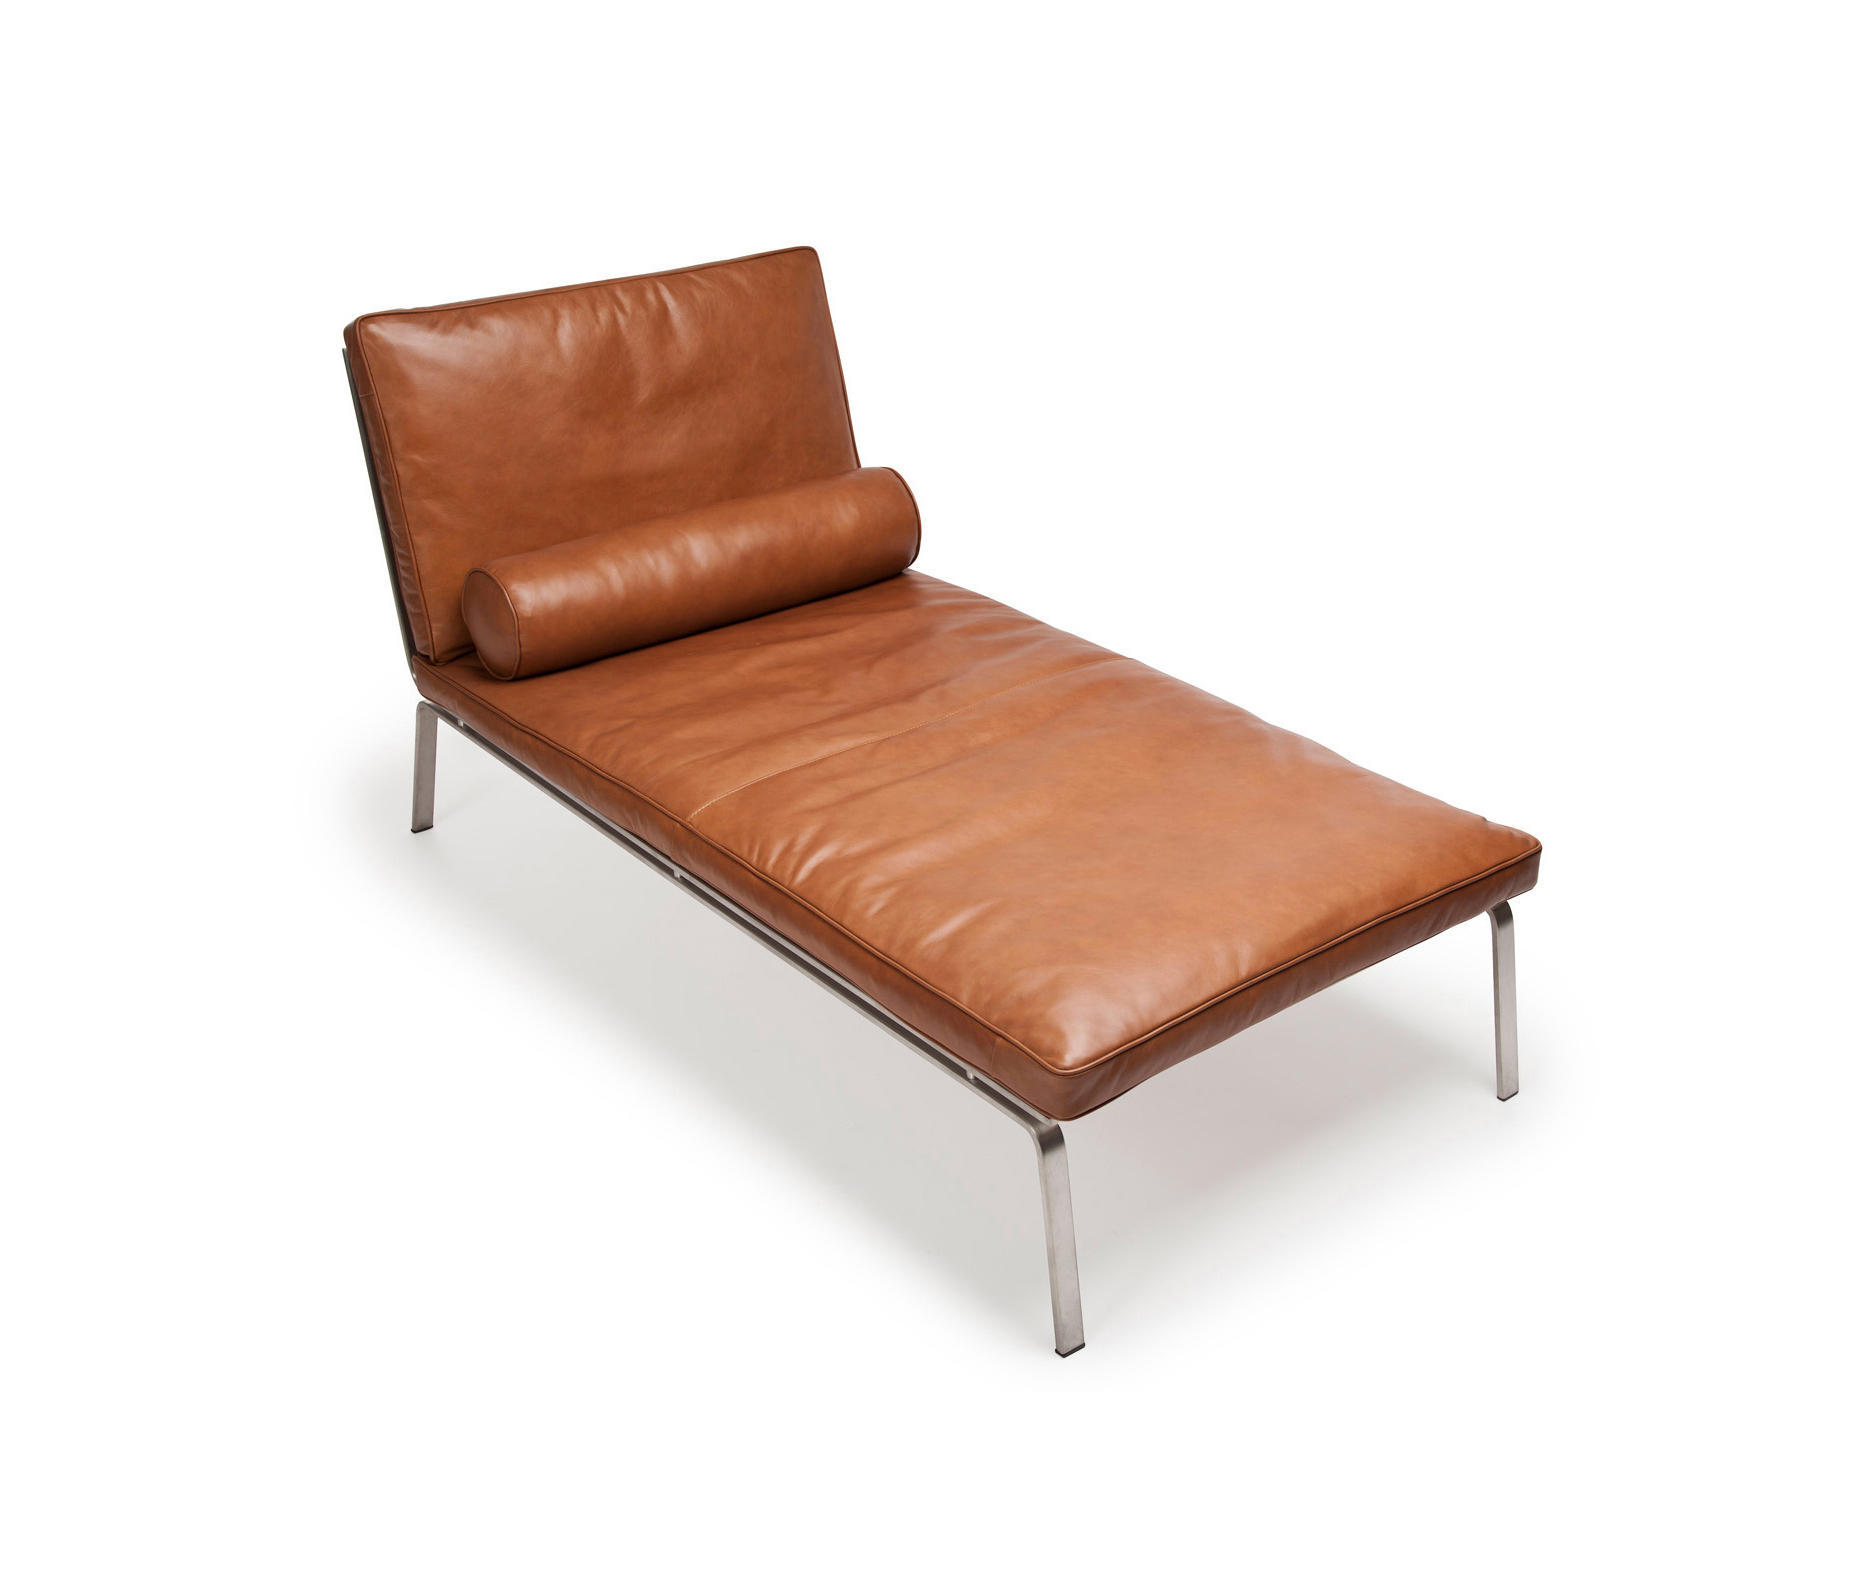 man chaise longue vintage leather cognac 21000 chaise longues from norr11 architonic. Black Bedroom Furniture Sets. Home Design Ideas